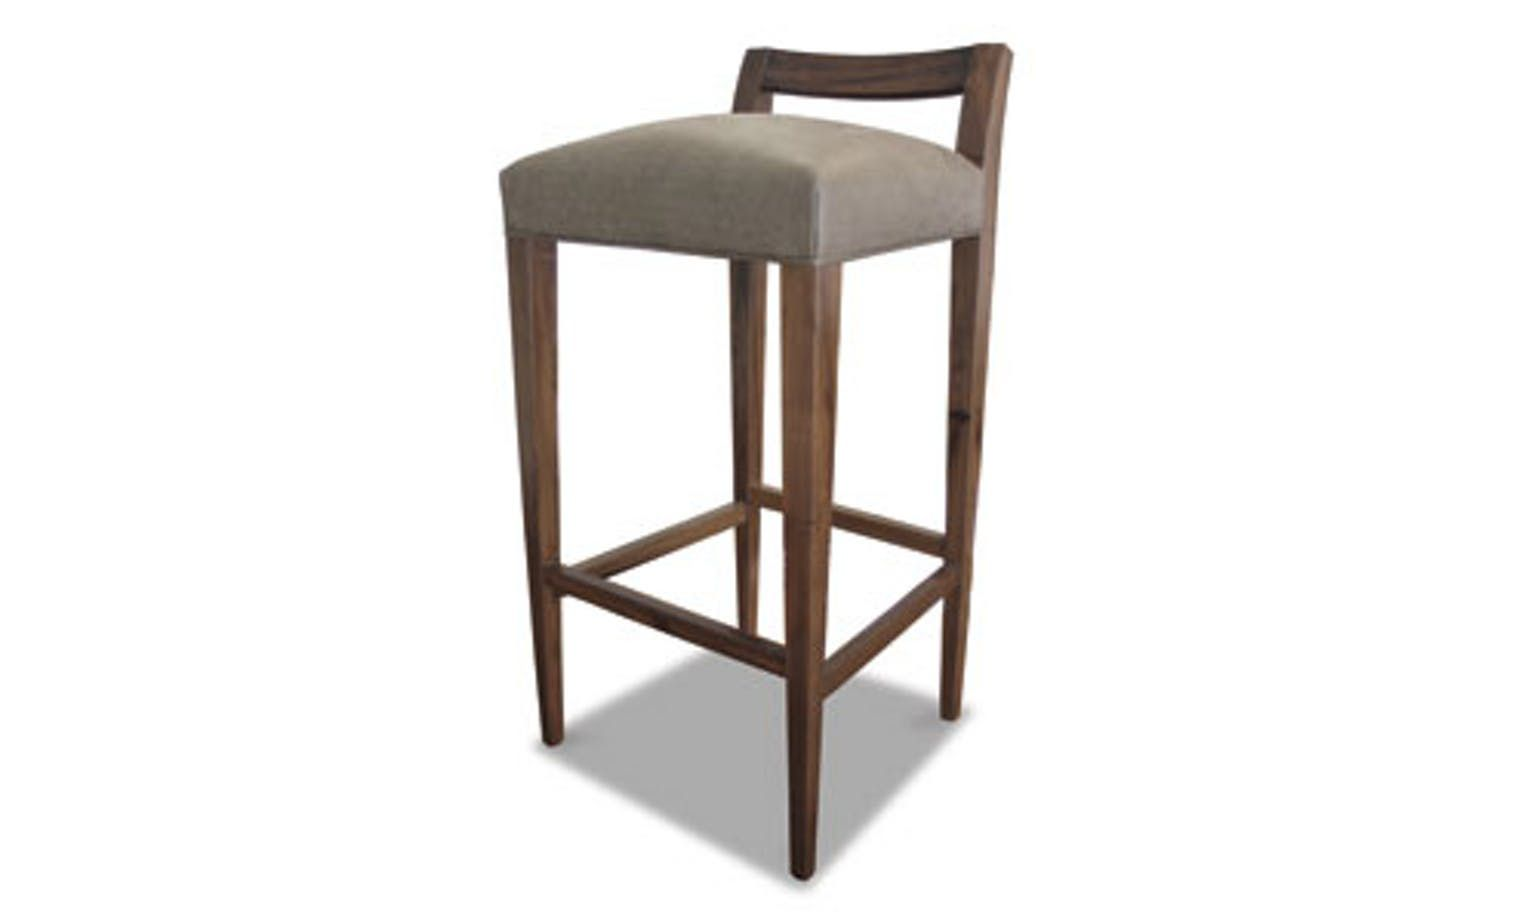 Cool Umberto Stool Contemporary Transitional Leather Gmtry Best Dining Table And Chair Ideas Images Gmtryco